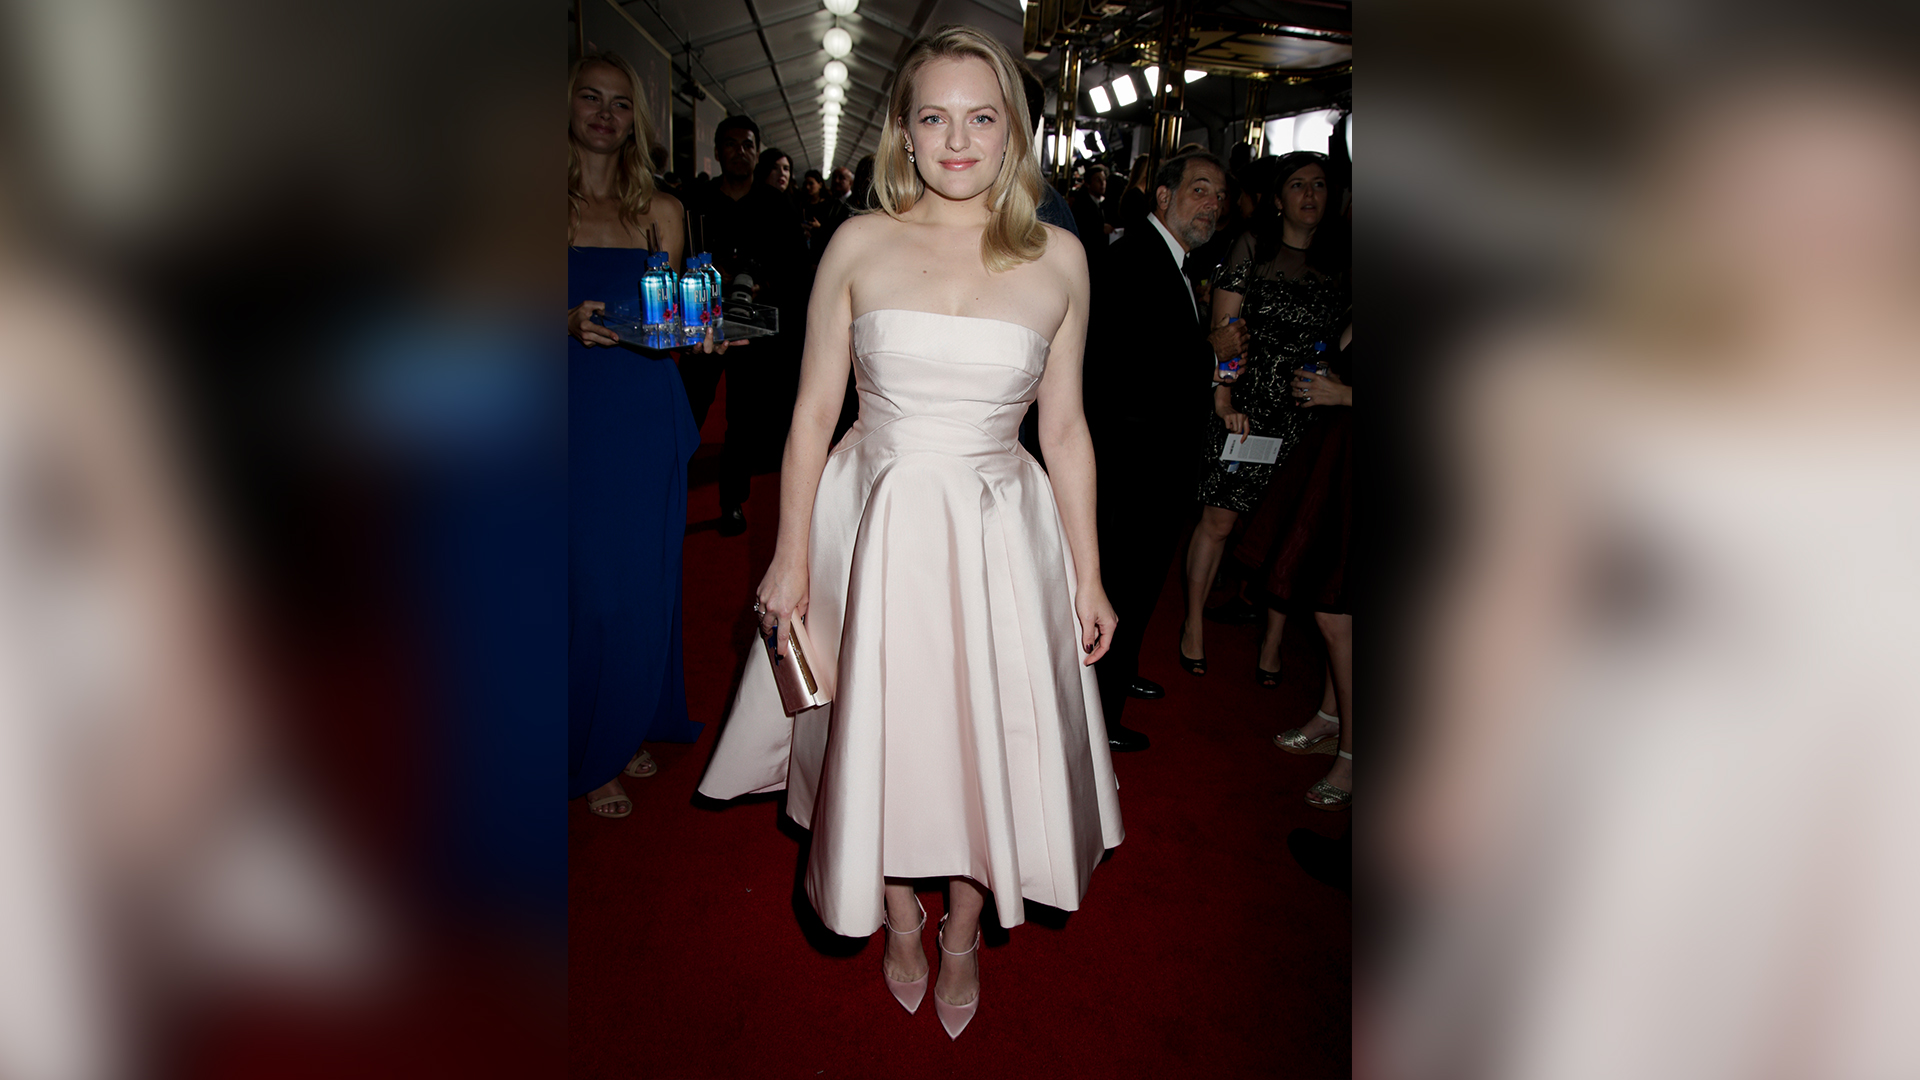 Elisabeth Moss from The Handmaid's Tale